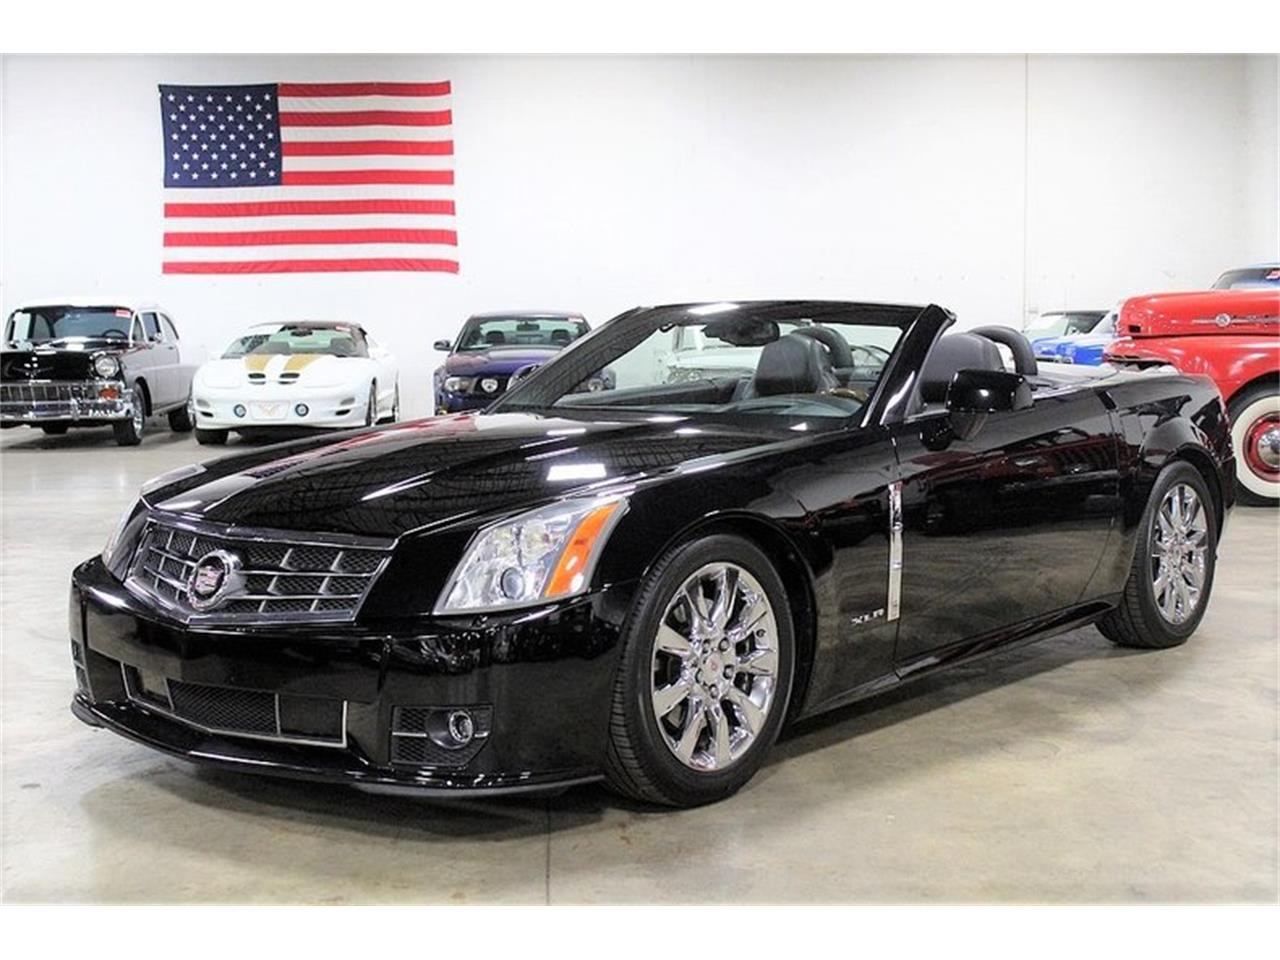 for sale 2009 cadillac xlr in kentwood, michigan